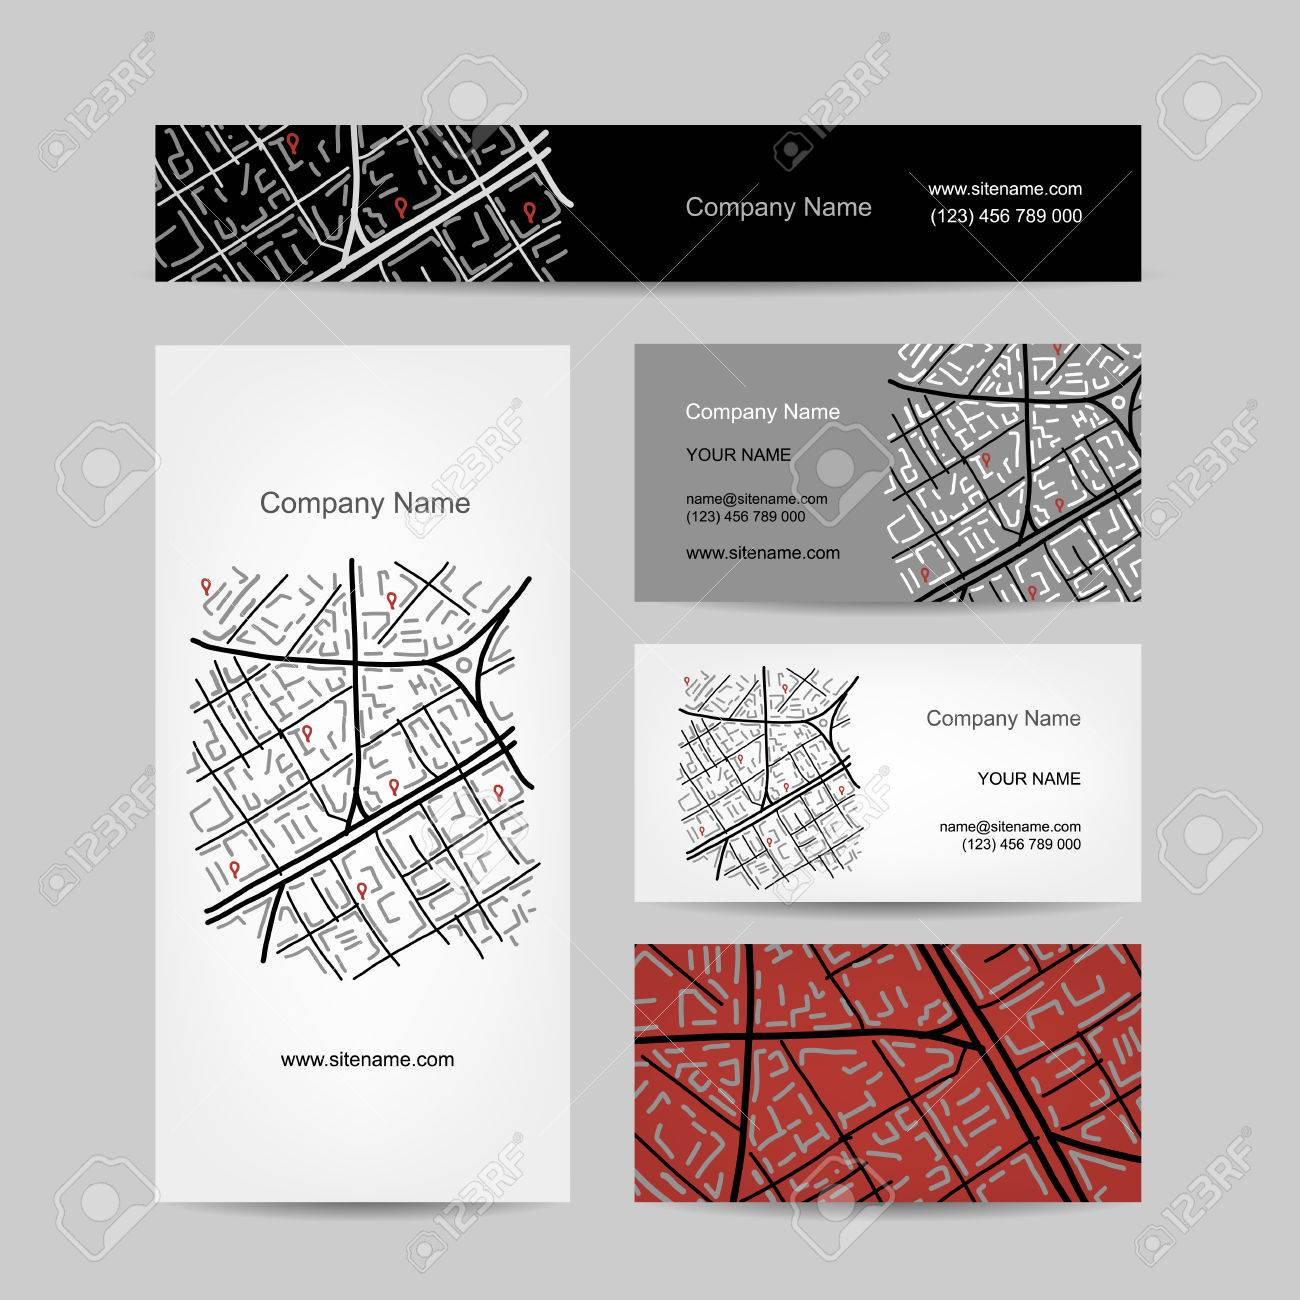 Sketch of city map, business card design on map code, map label, map of bern and dreilinden, map pen, map color, map of croom motorcycle area, map button, map frame, map table, map beach, map list, map plastic, map craft,